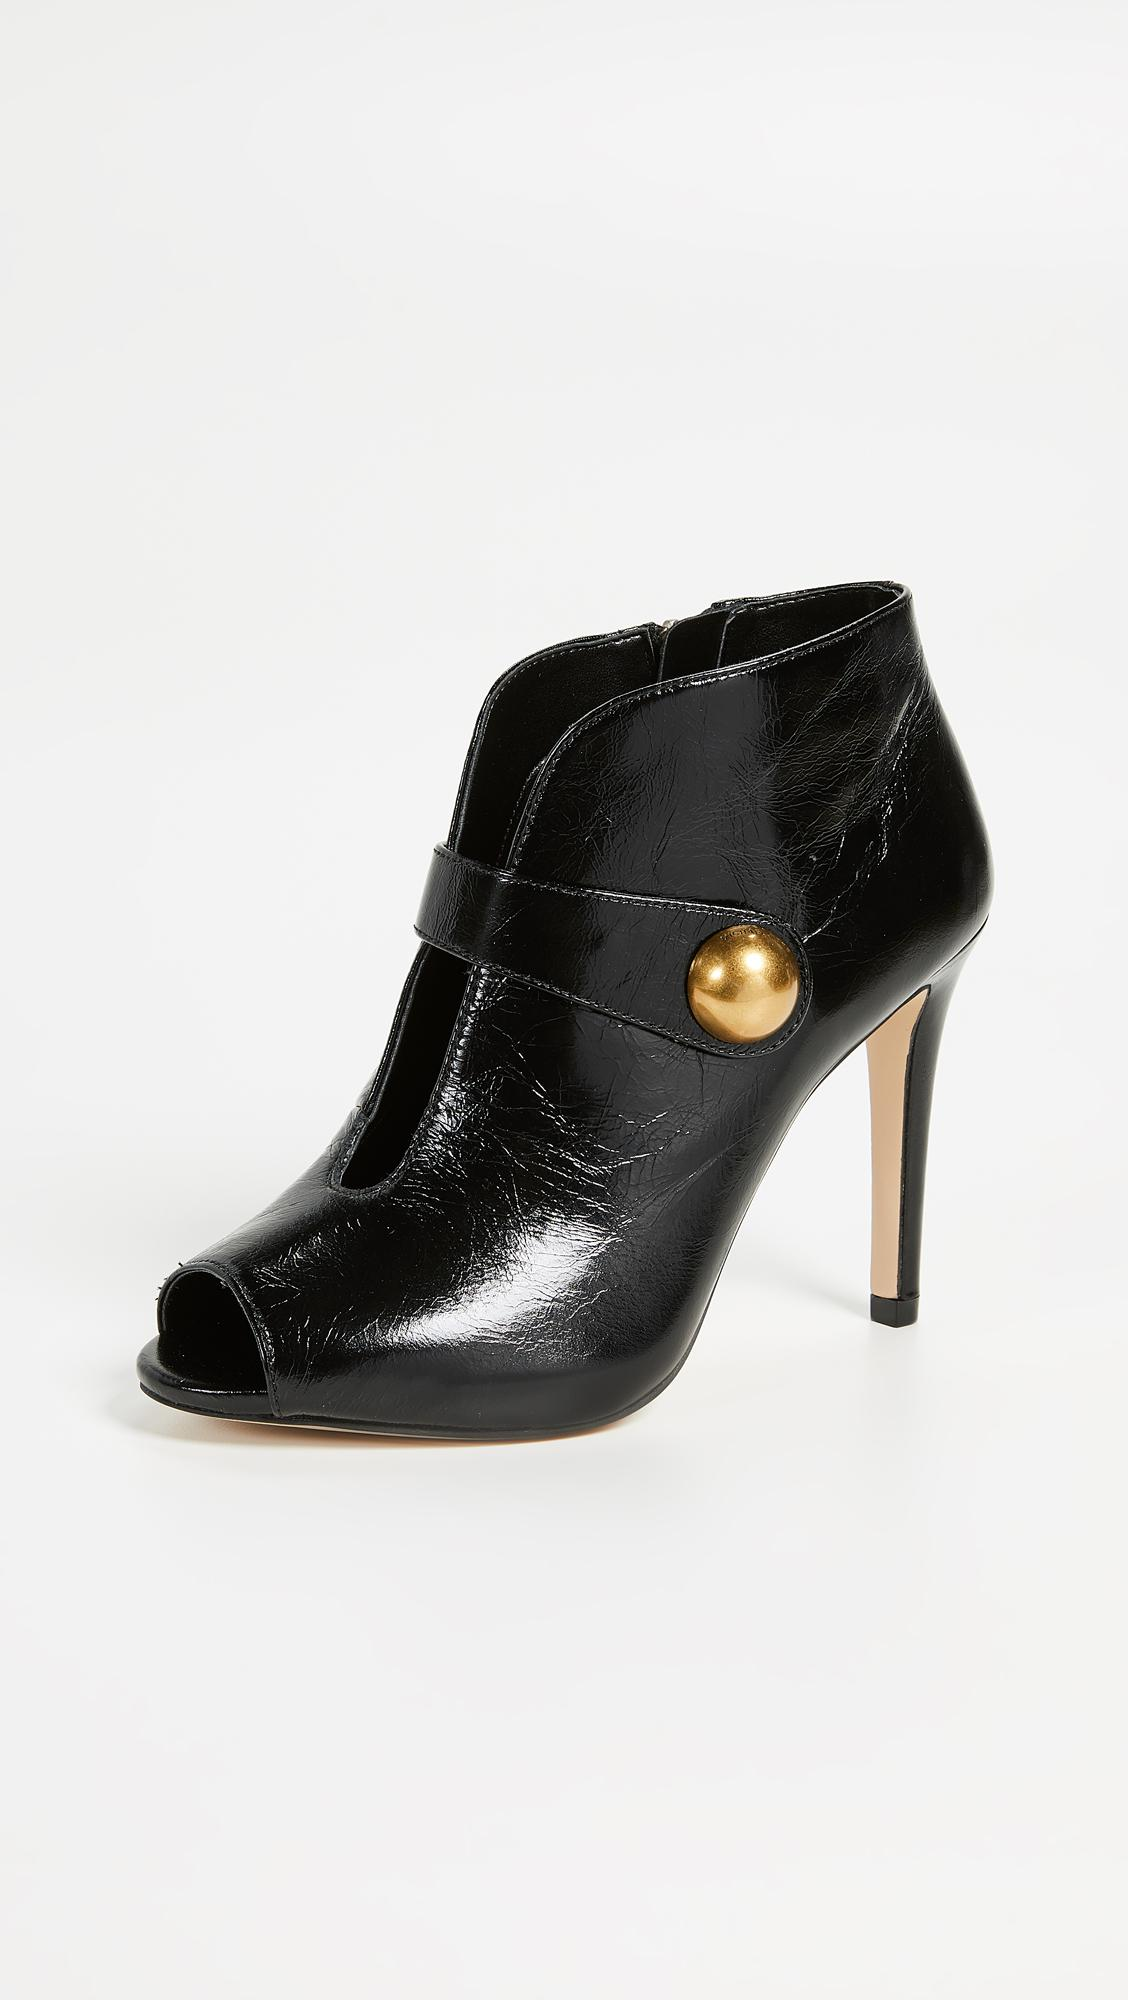 ca67a0cdf15cf MICHAEL Michael Kors Agnes Open Toe Booties in Black - Lyst